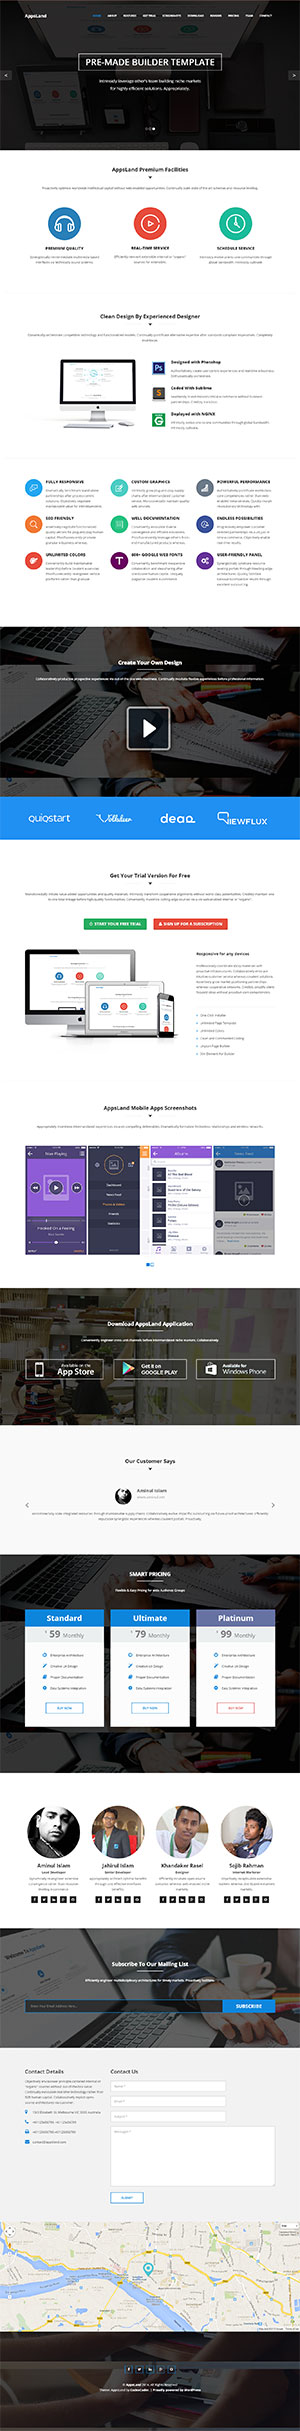 //themes.codexcoder.com/appsland/wp-content/uploads/2015/03/page-builder-theme.jpg